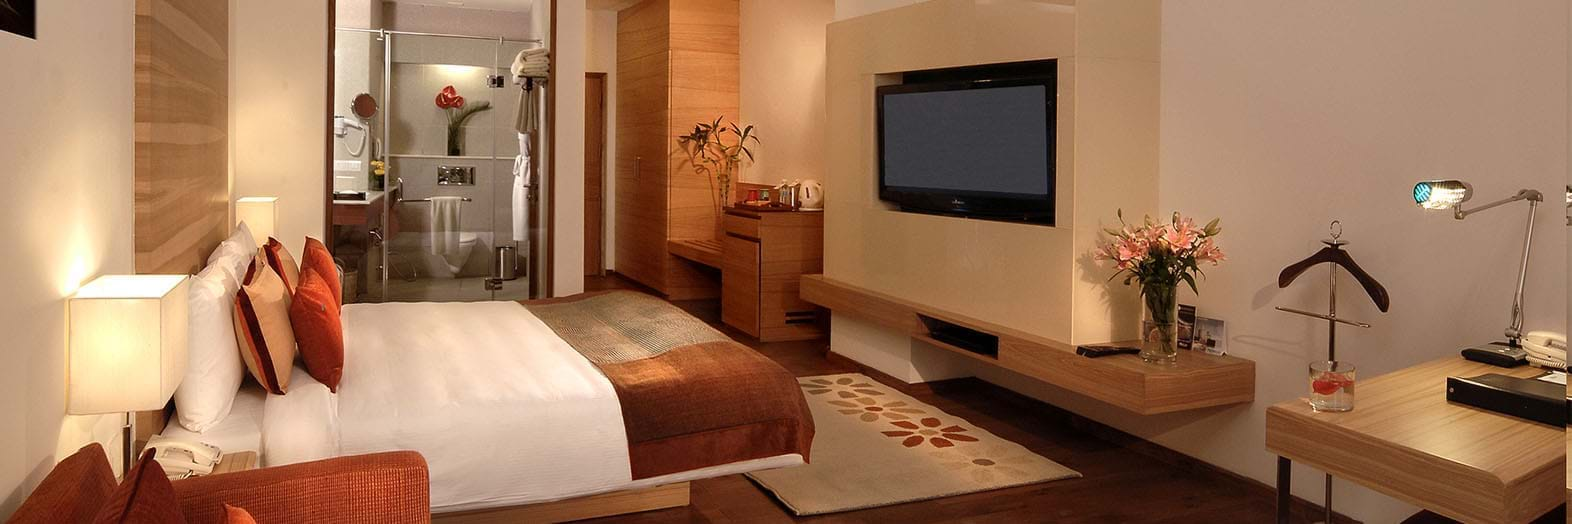 Hotel offers in Gurgaon